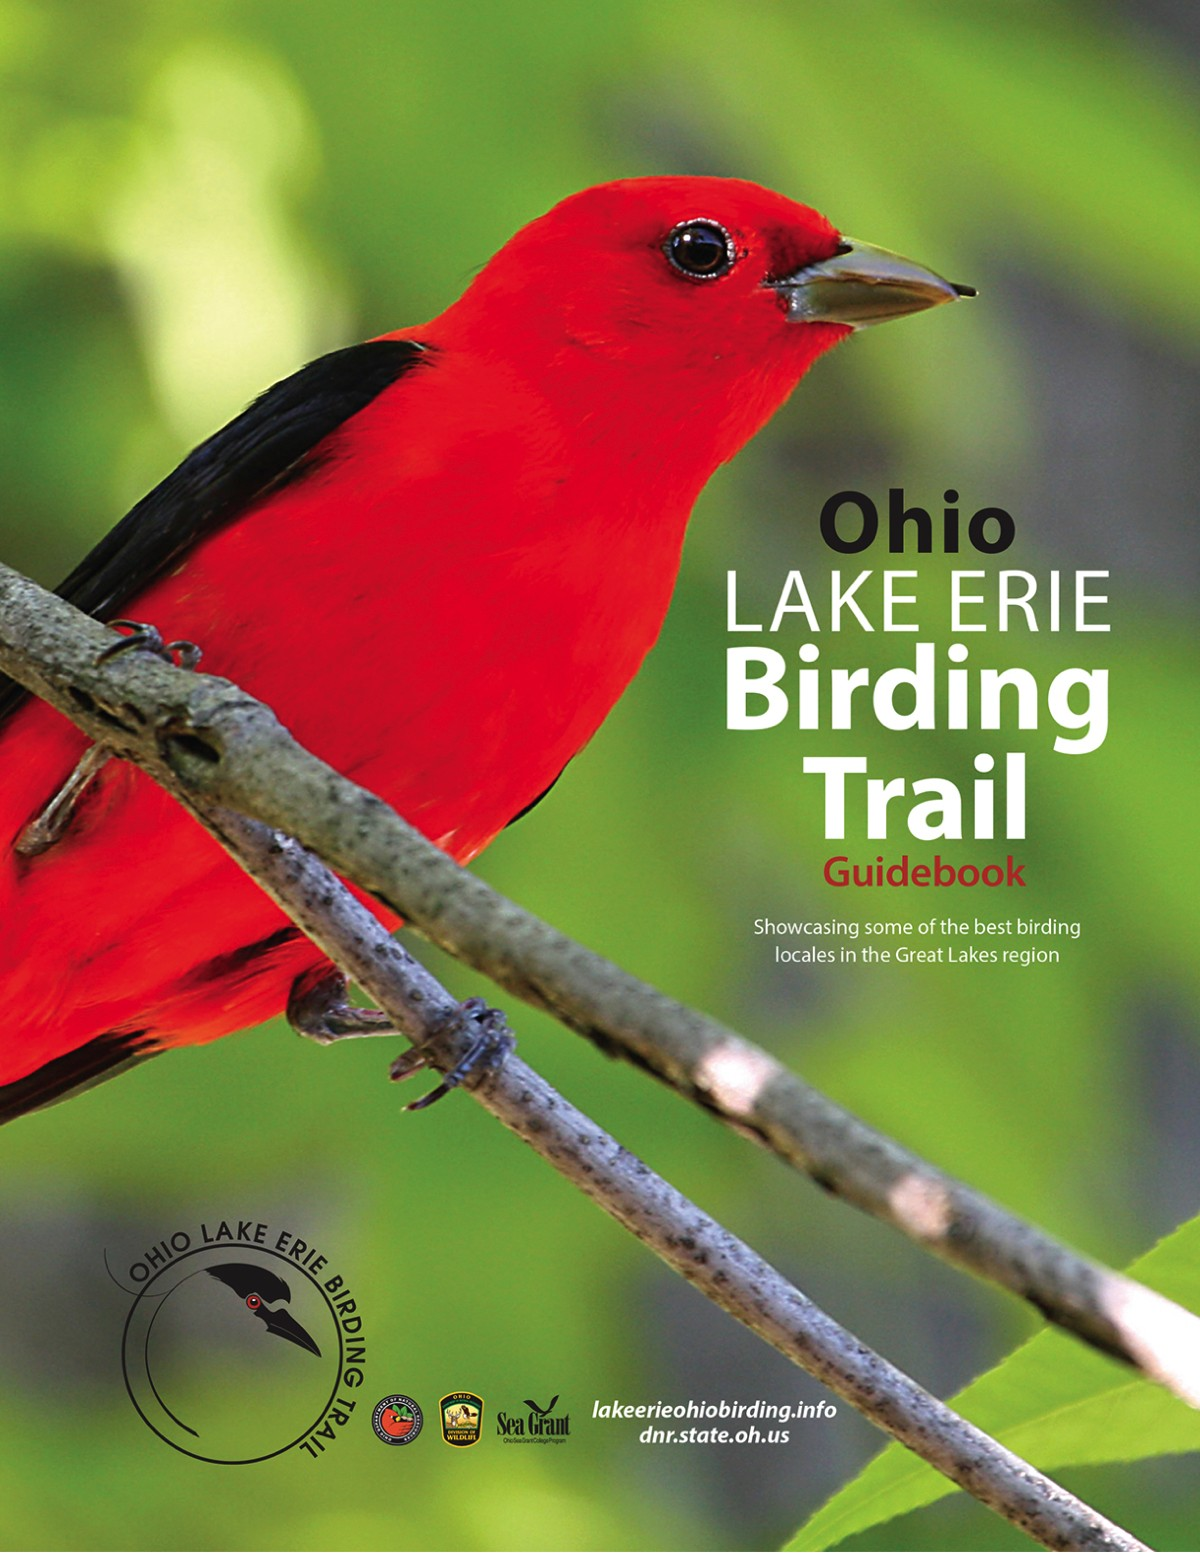 Birding Trail Guidebook Cover